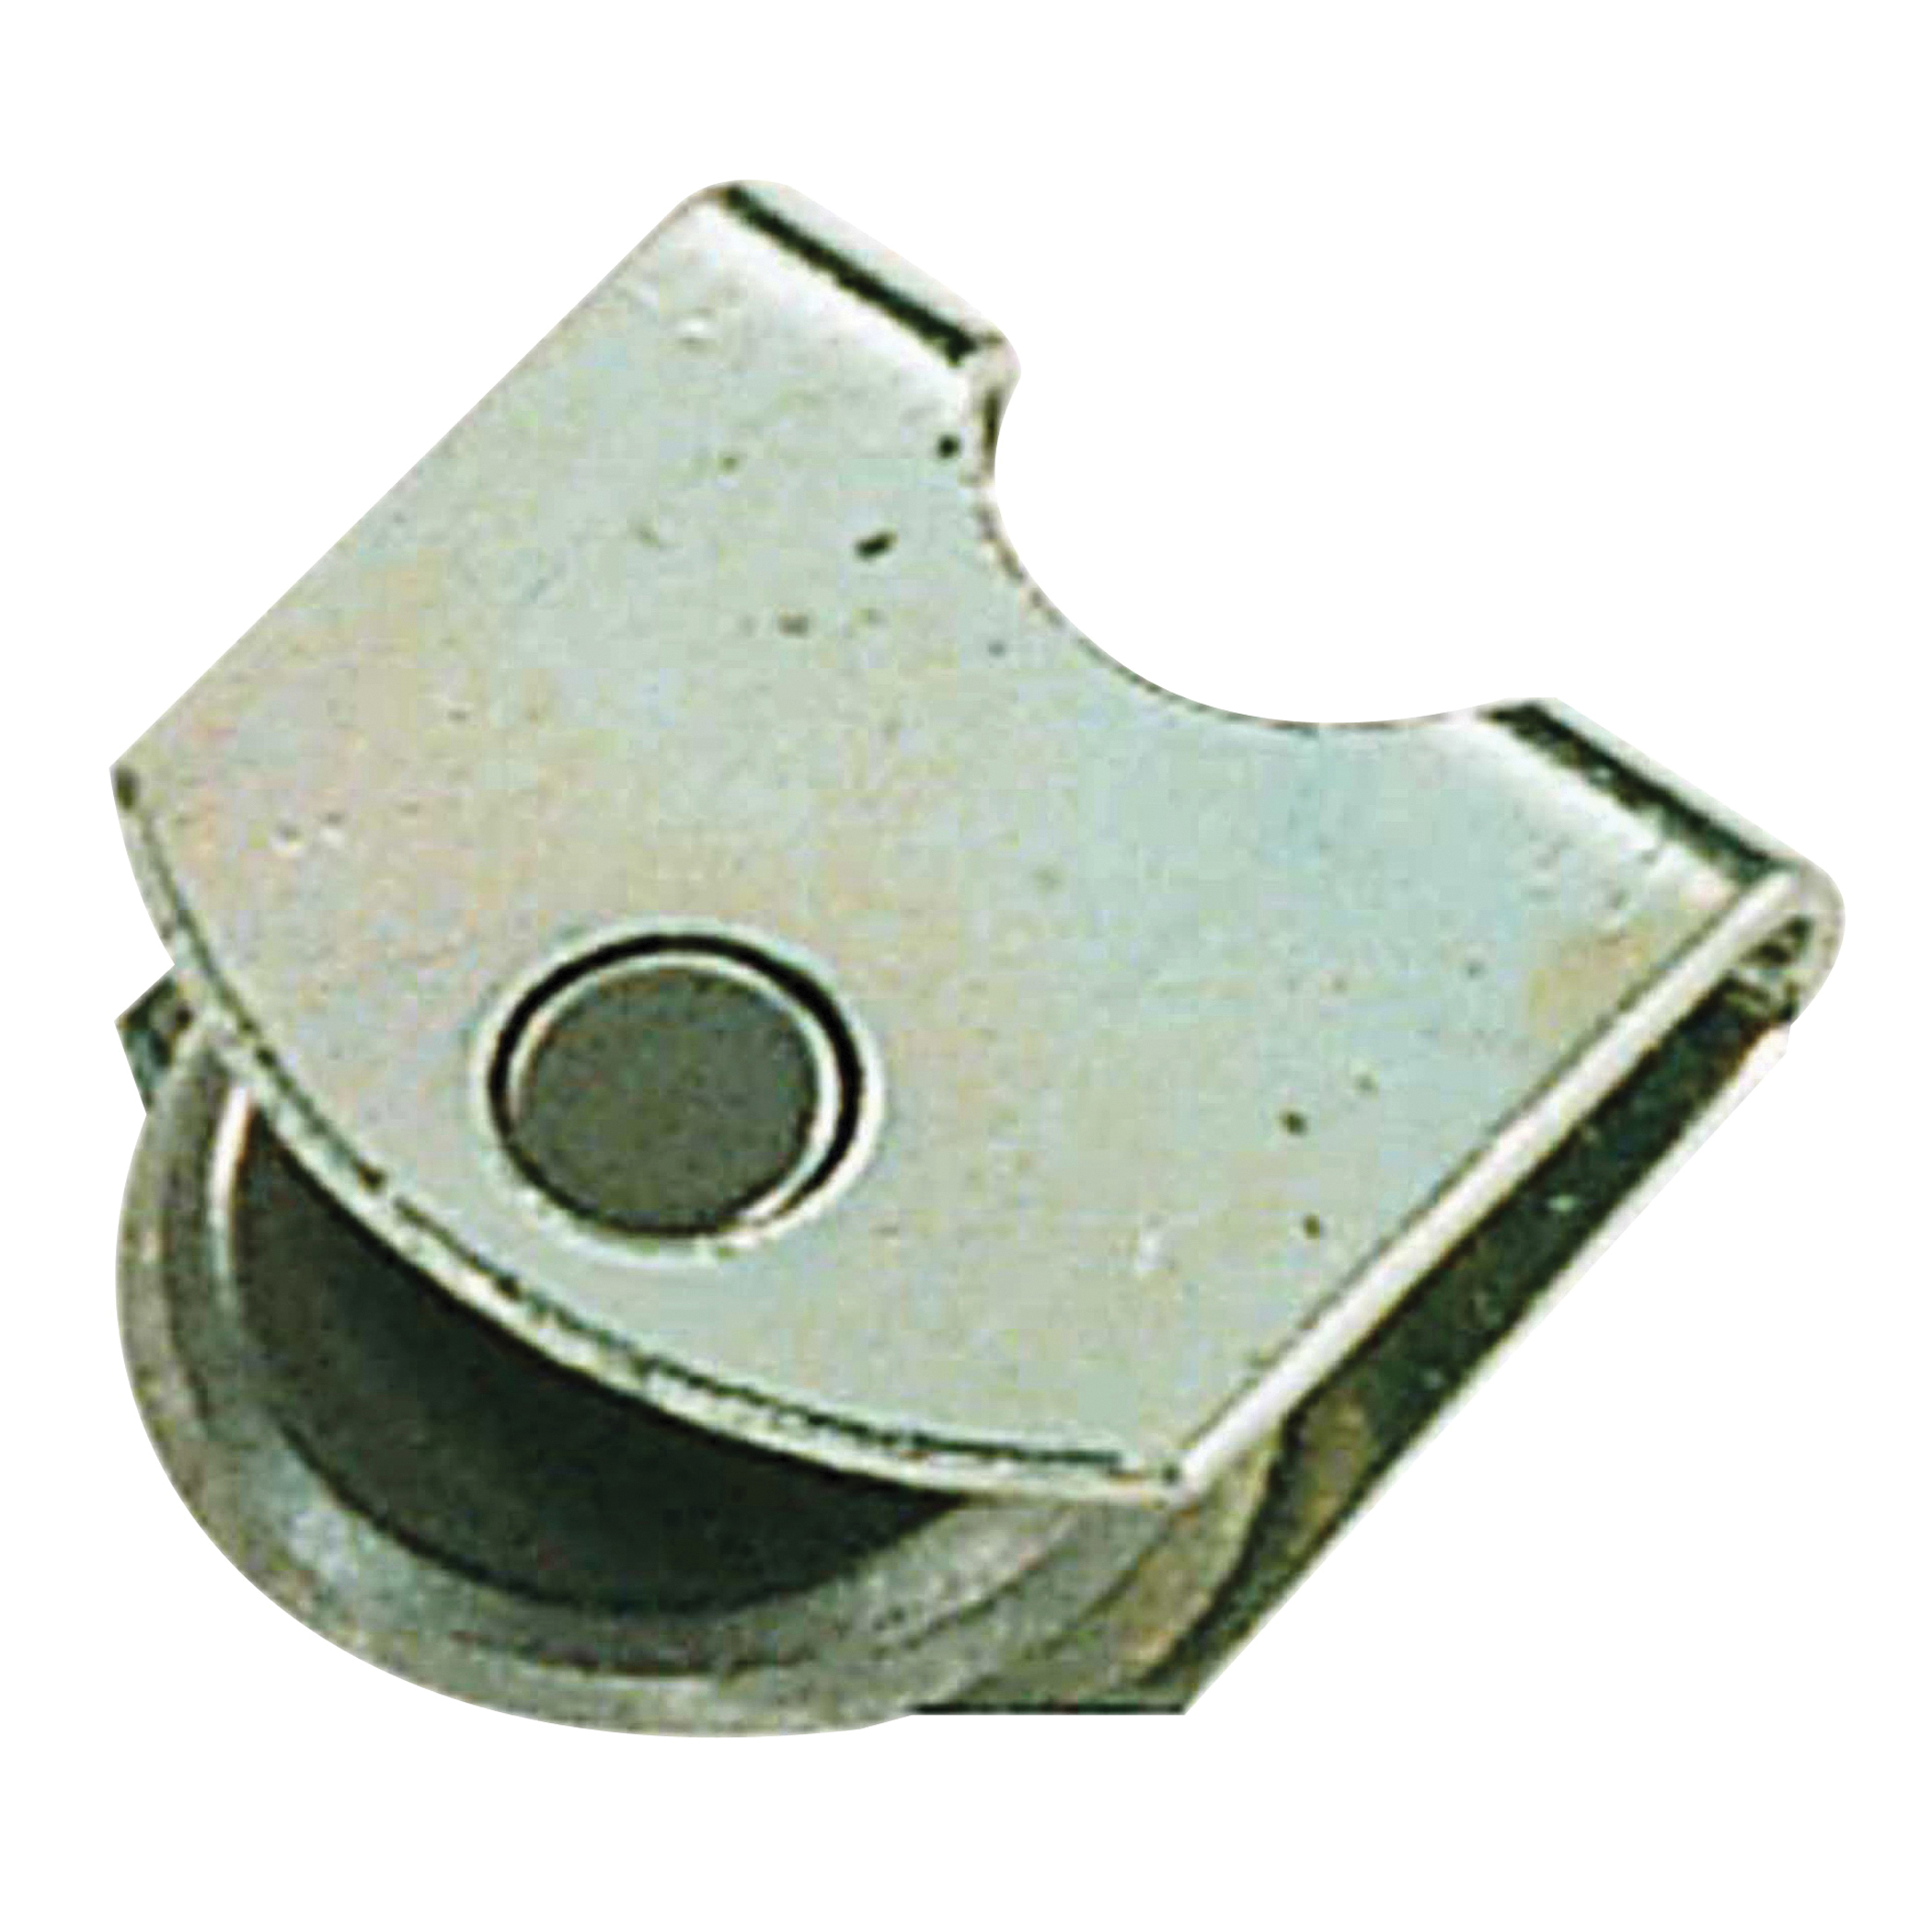 Picture of FLETCHER 02-120 Glass Scoring Wheel Unit, 4 in Cutting Capacity, Steel Body